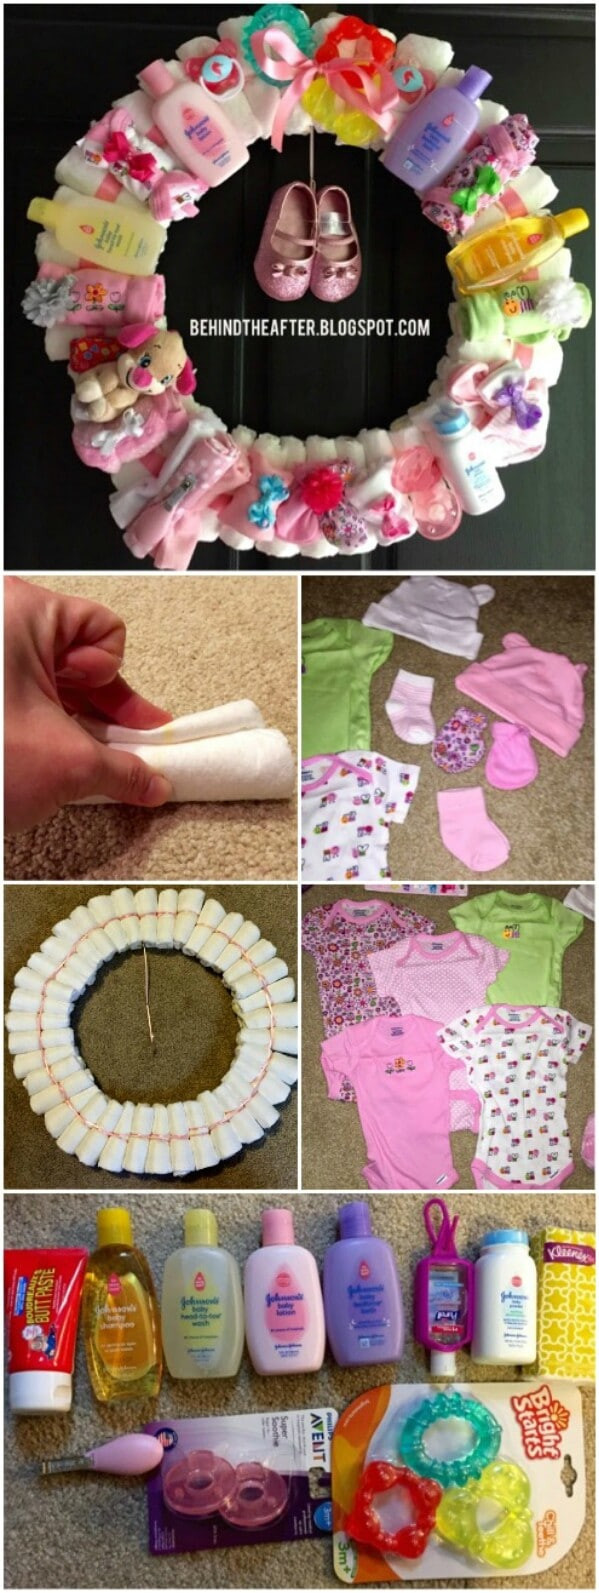 Best ideas about Homemade Baby Shower Gift Ideas . Save or Pin 25 Enchantingly Adorable Baby Shower Gift Ideas That Will Now.